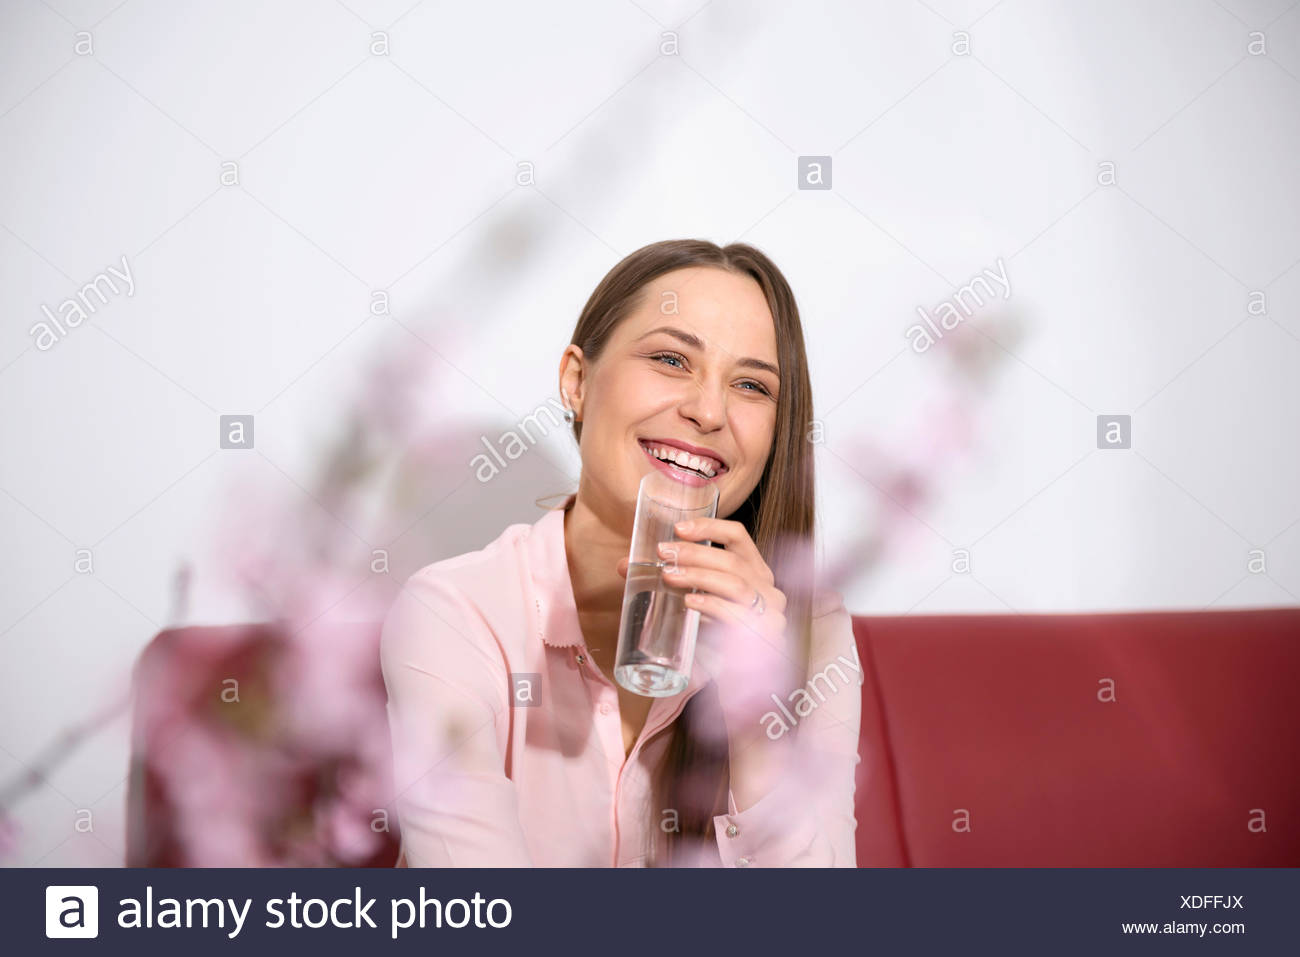 Young woman sofa sitting smiling drinking water - Stock Image